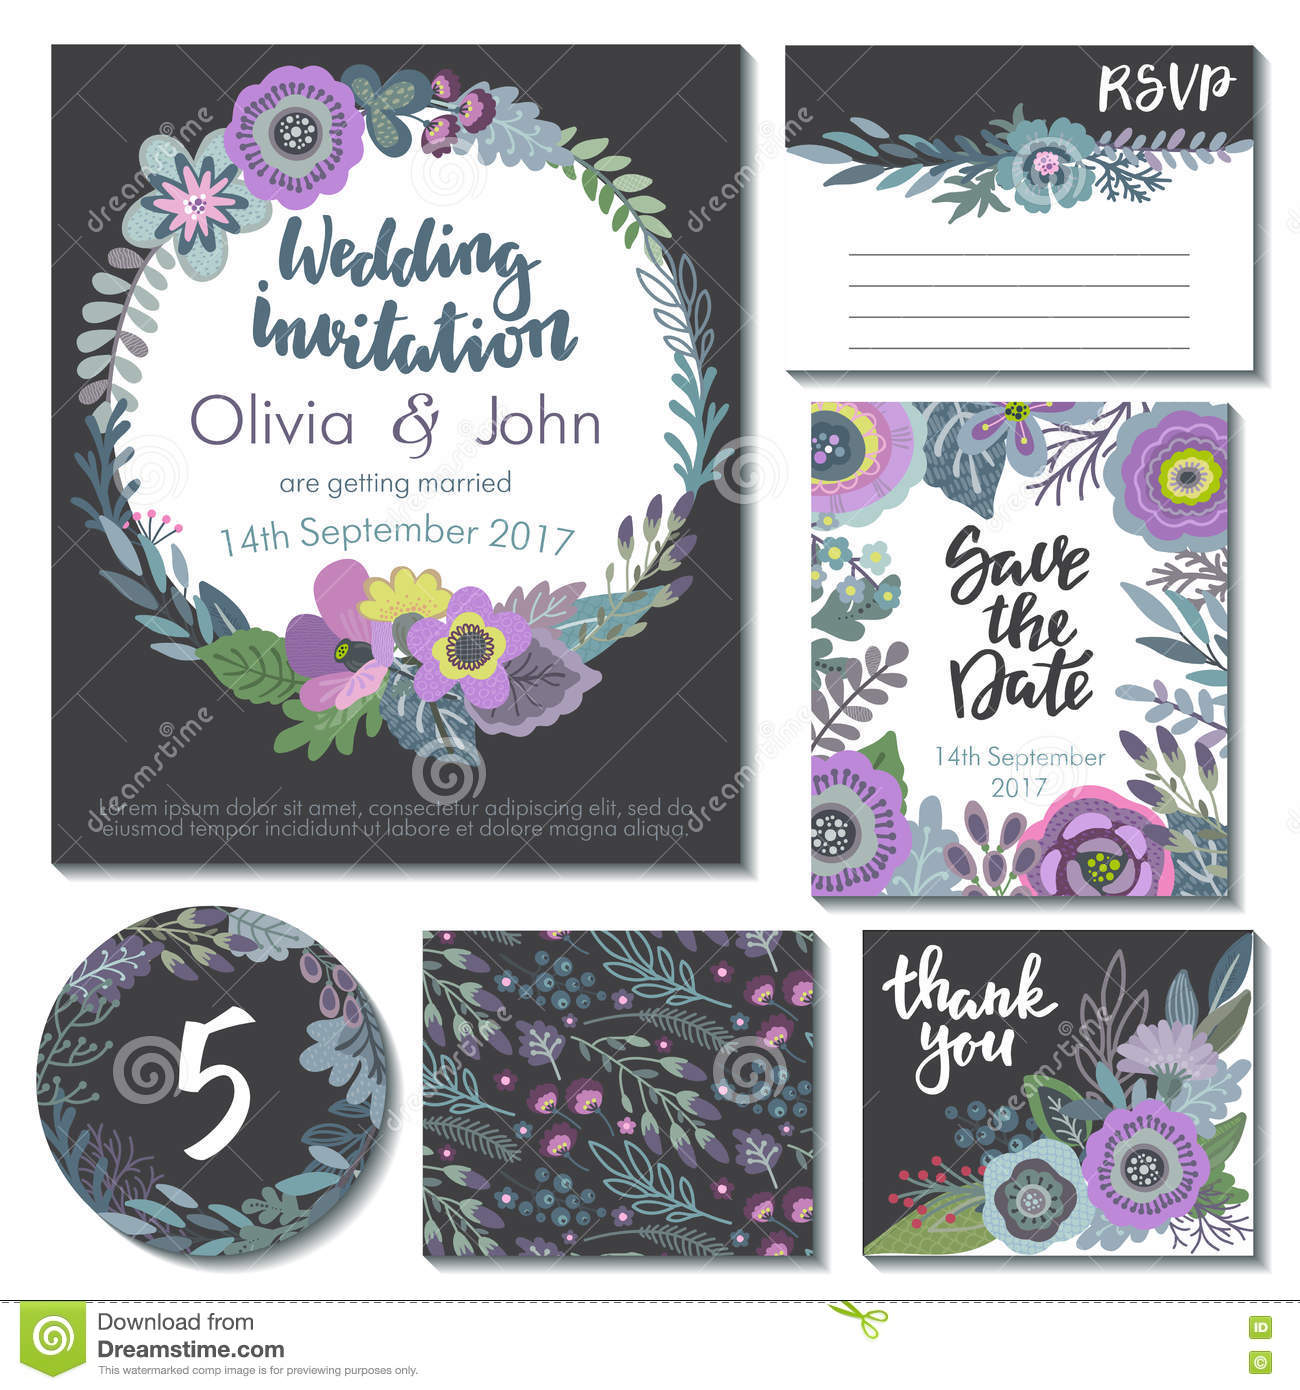 vector wedding collection templates for invitation thank you card